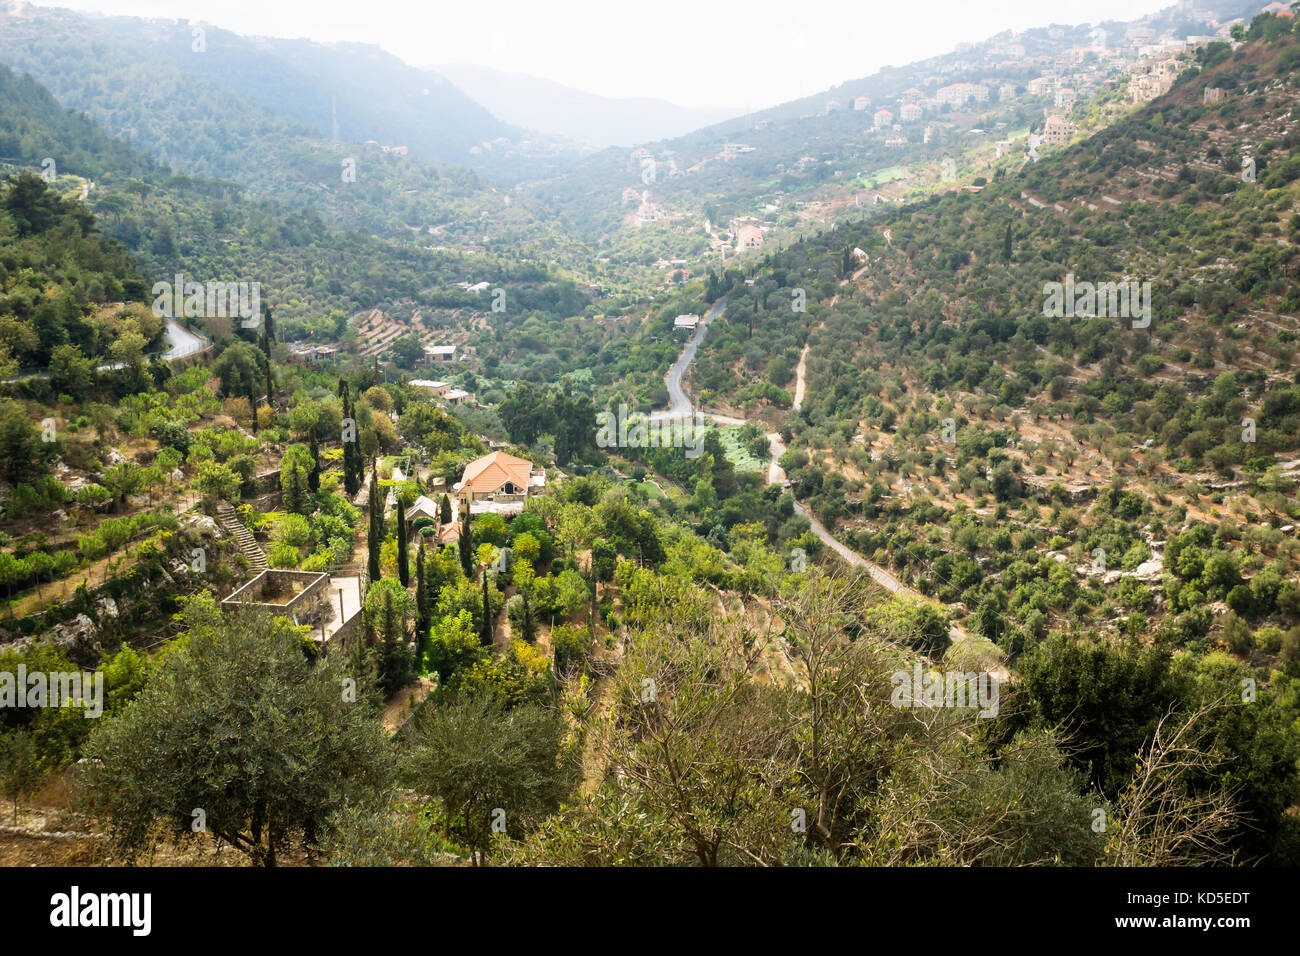 View to the valley and Deir al Kamar from Beit ed-Din, Lebanon - Stock Image